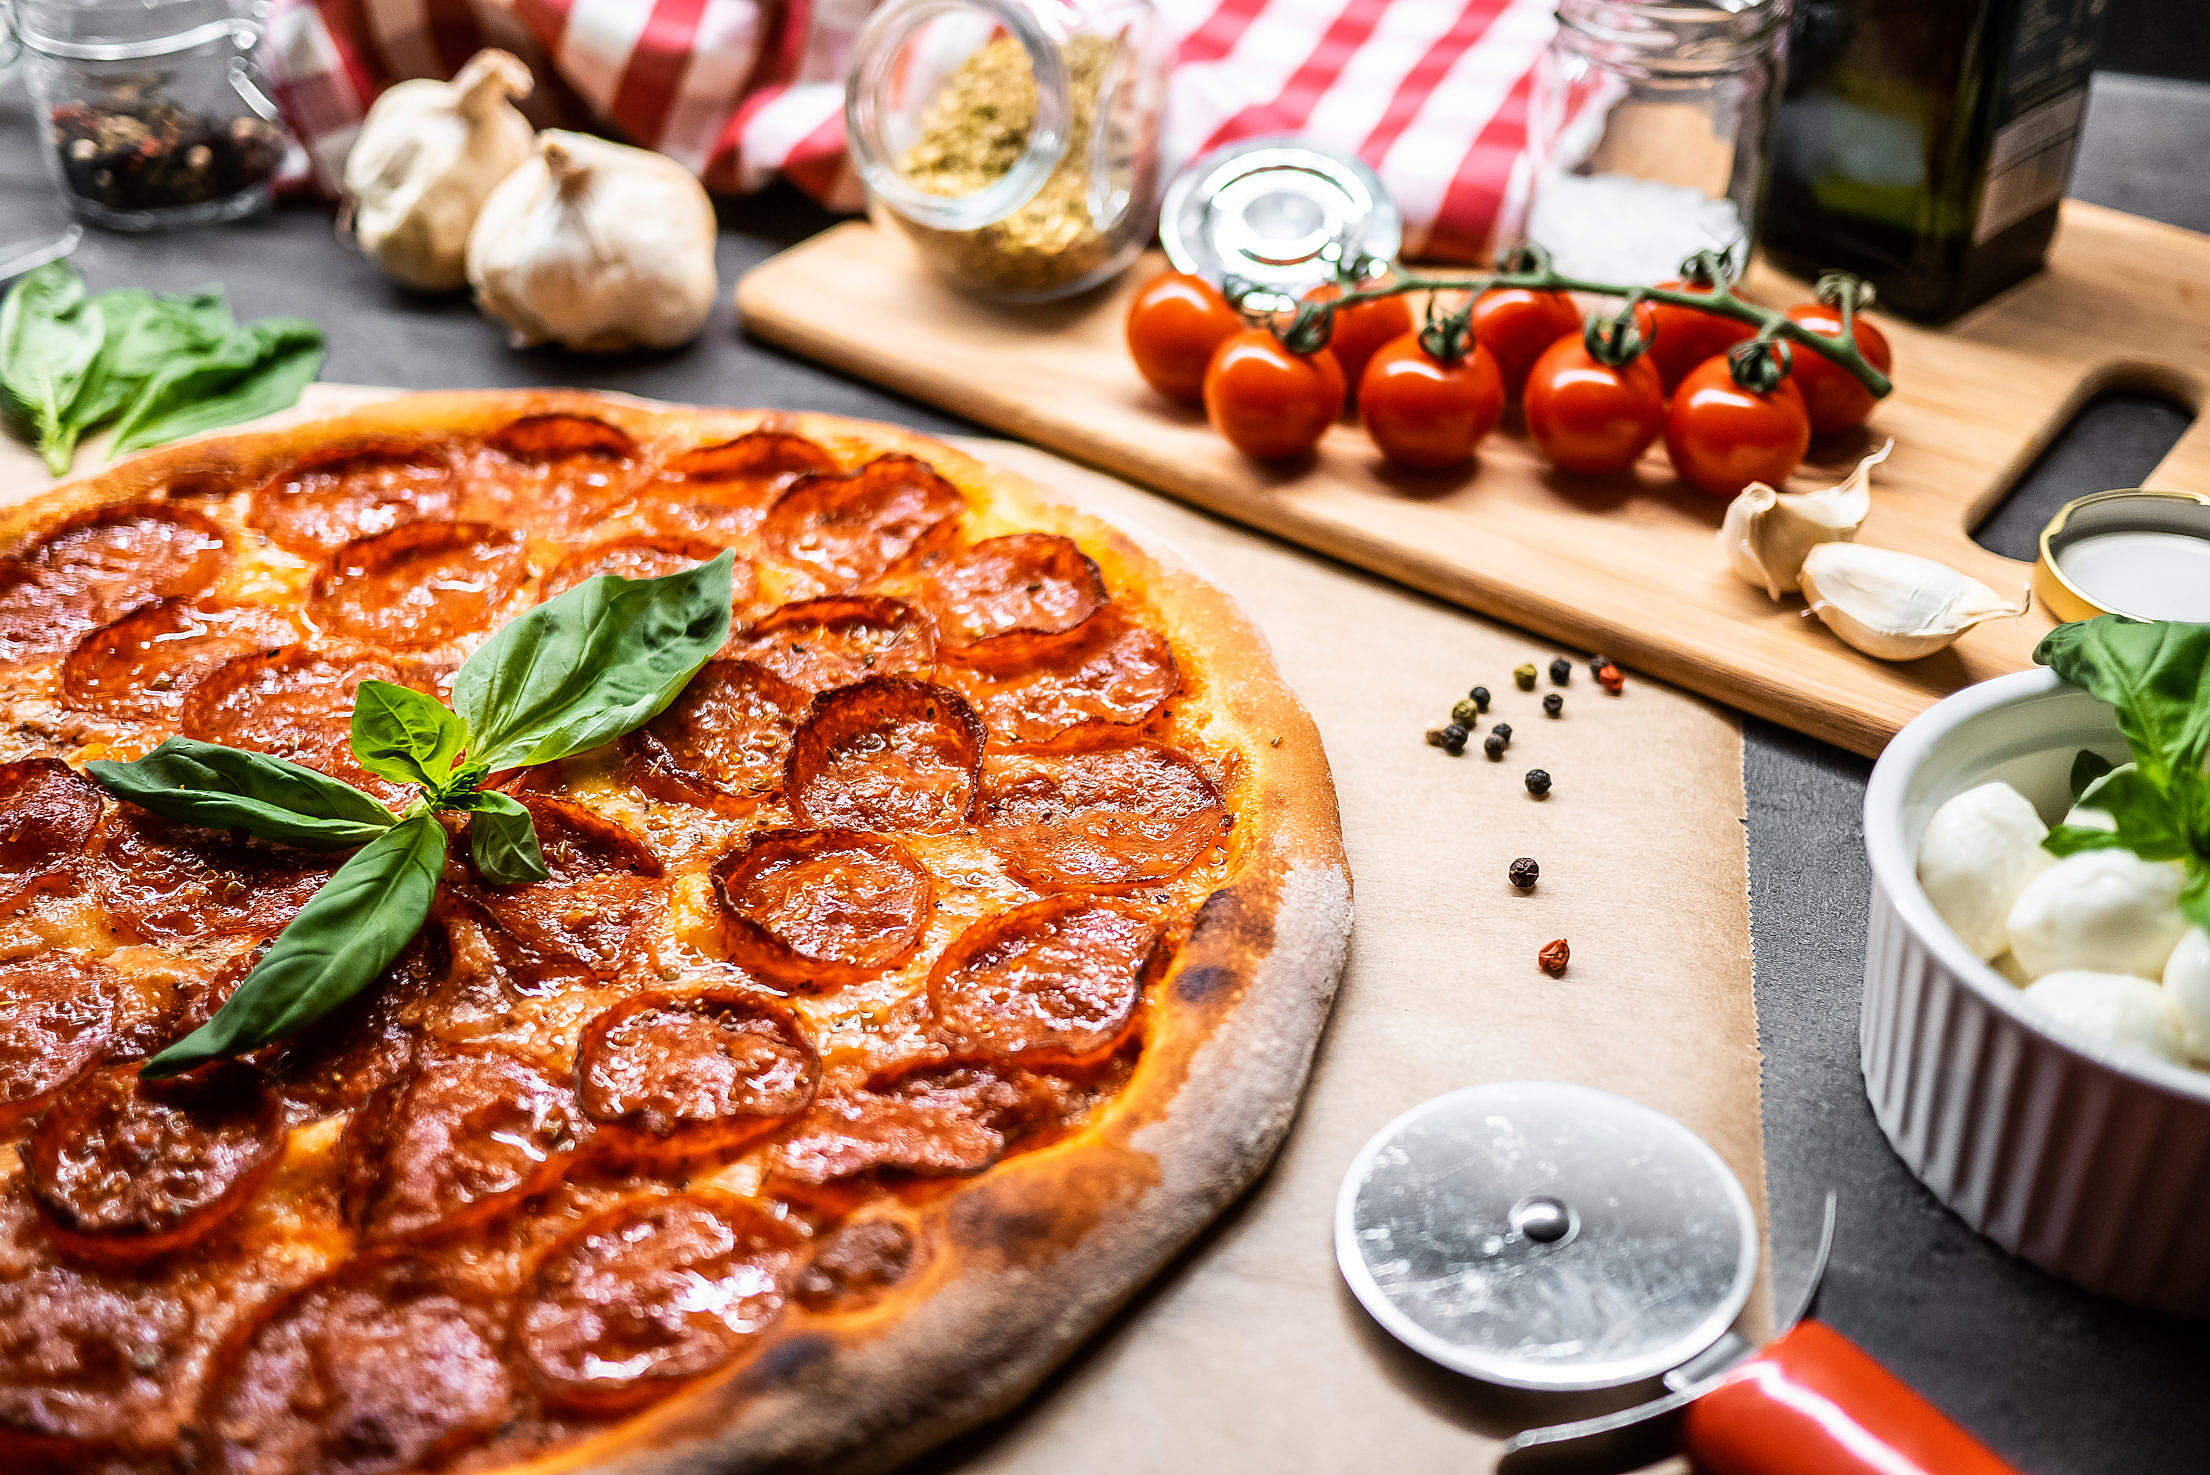 Pizza Salami Free Stock Photo